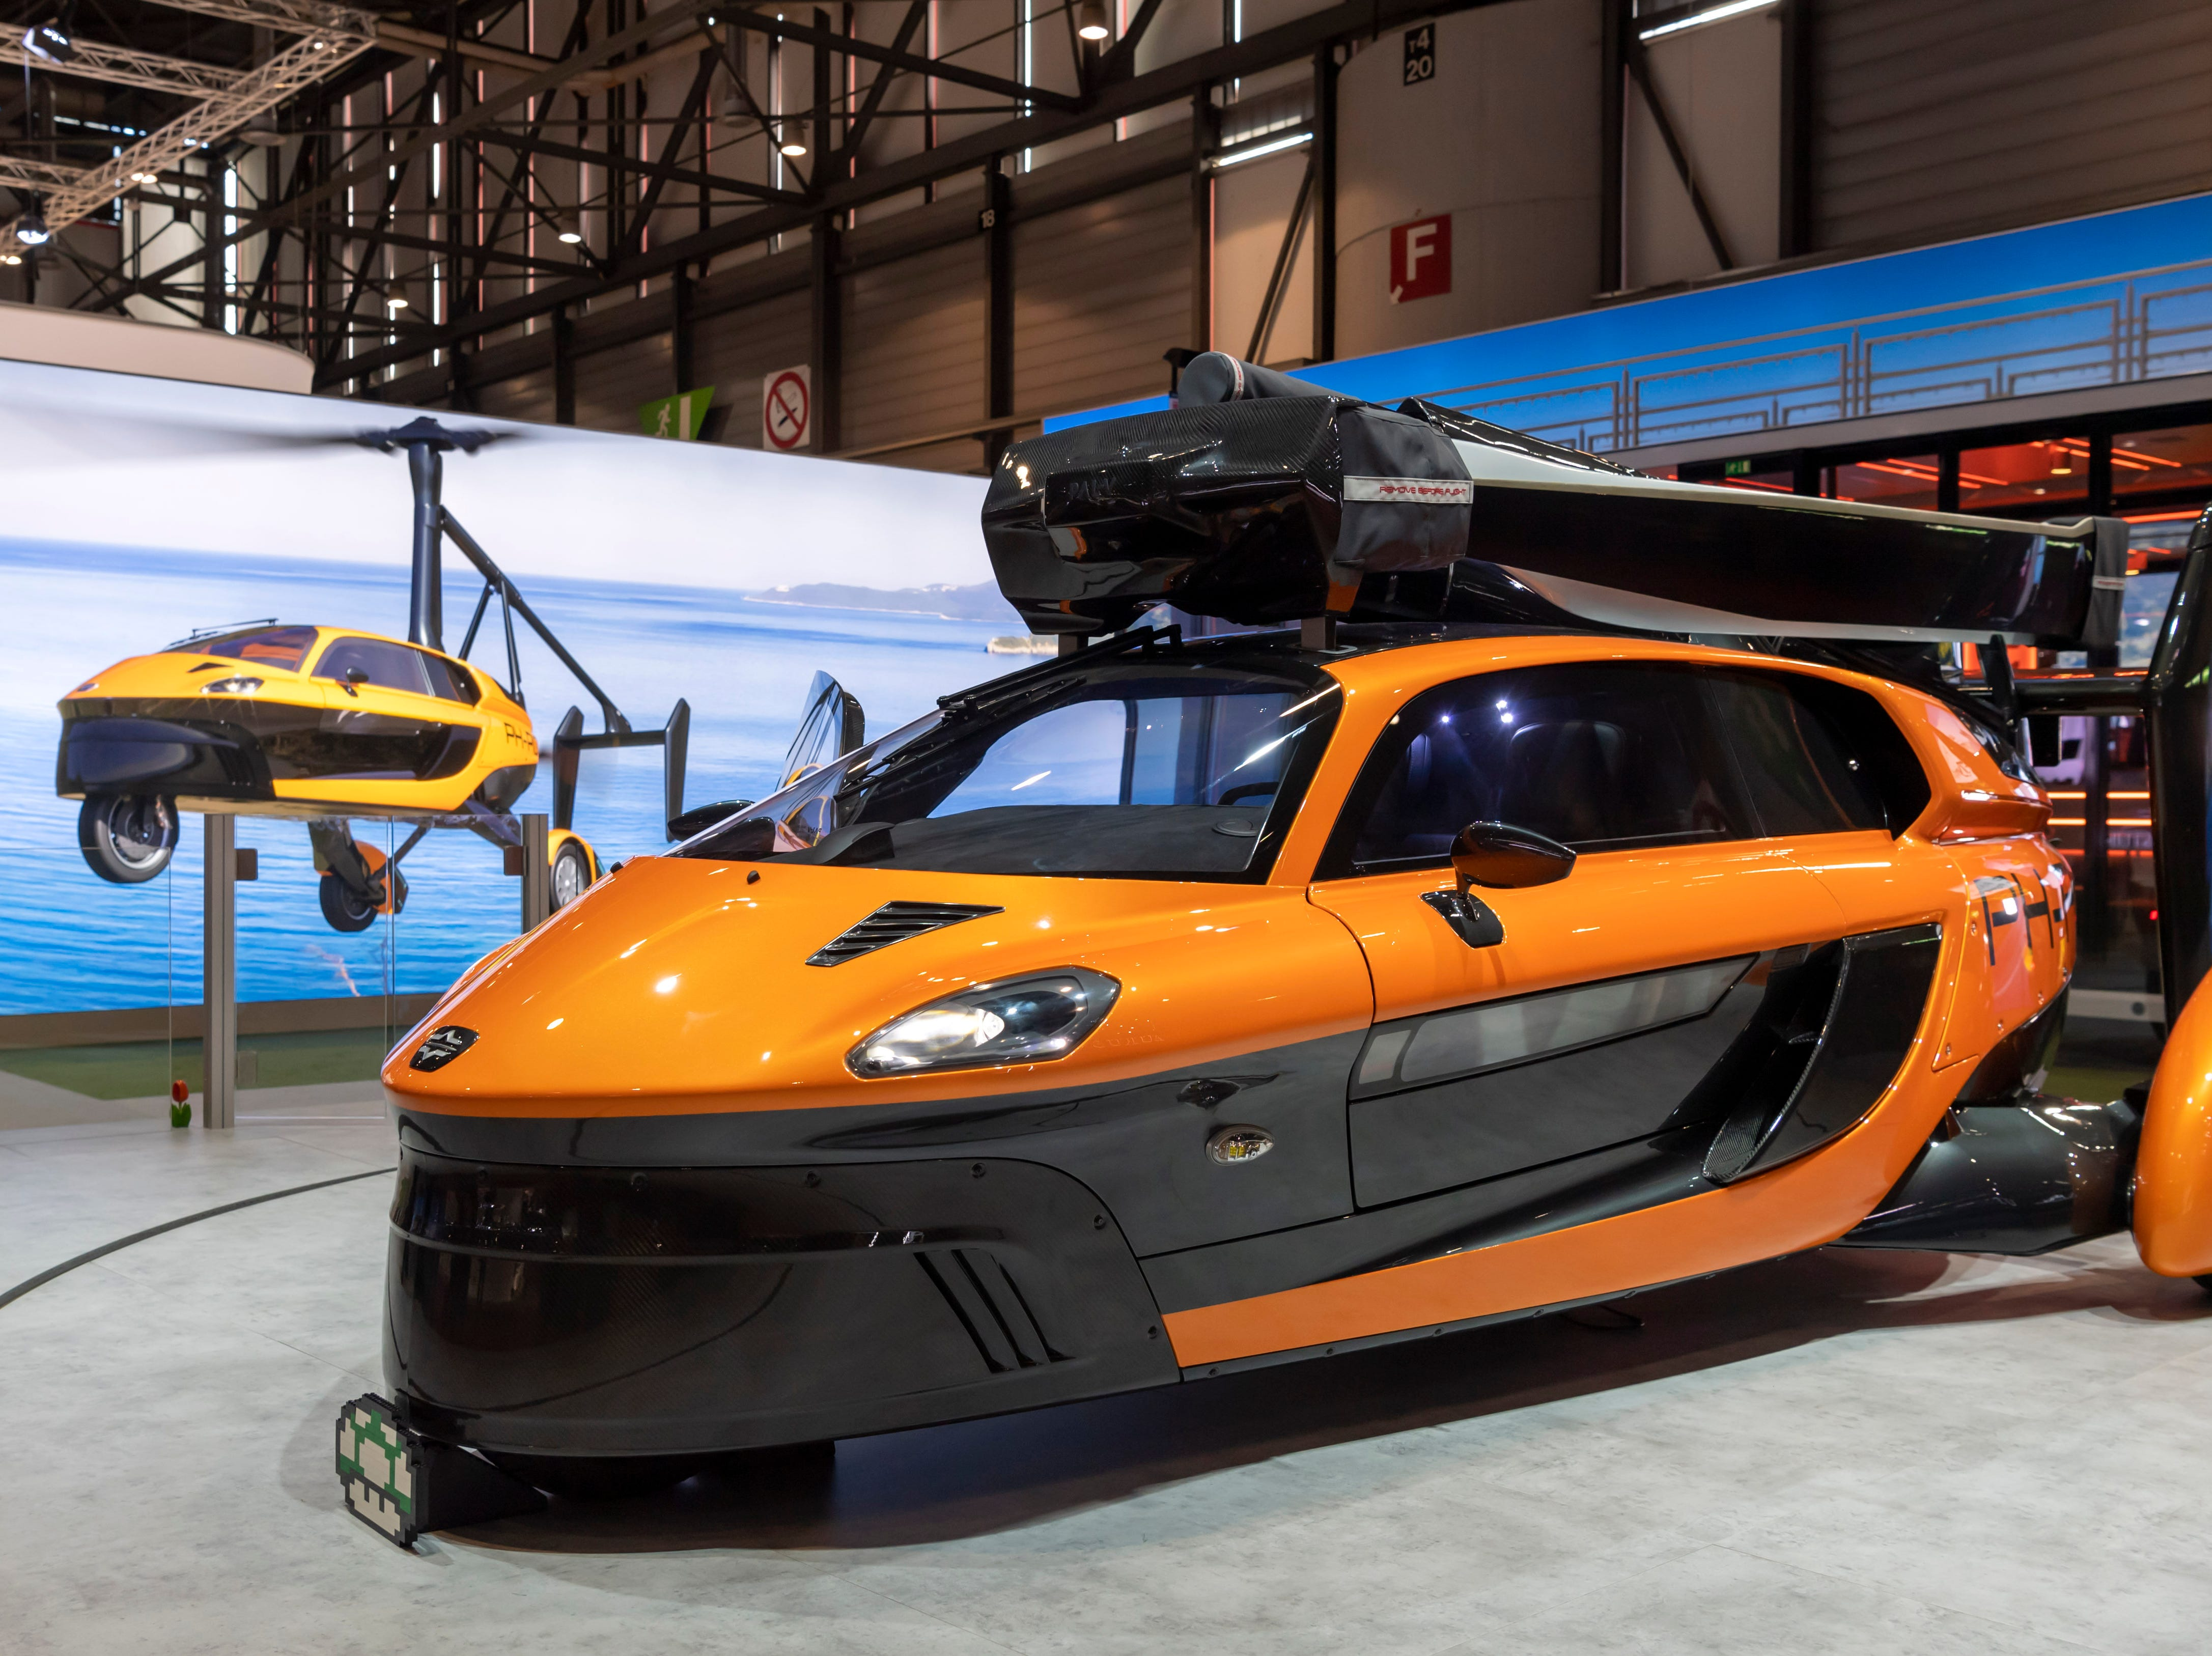 The new flying car PAL-V Liberty Pioneer Edition is presented at the show.